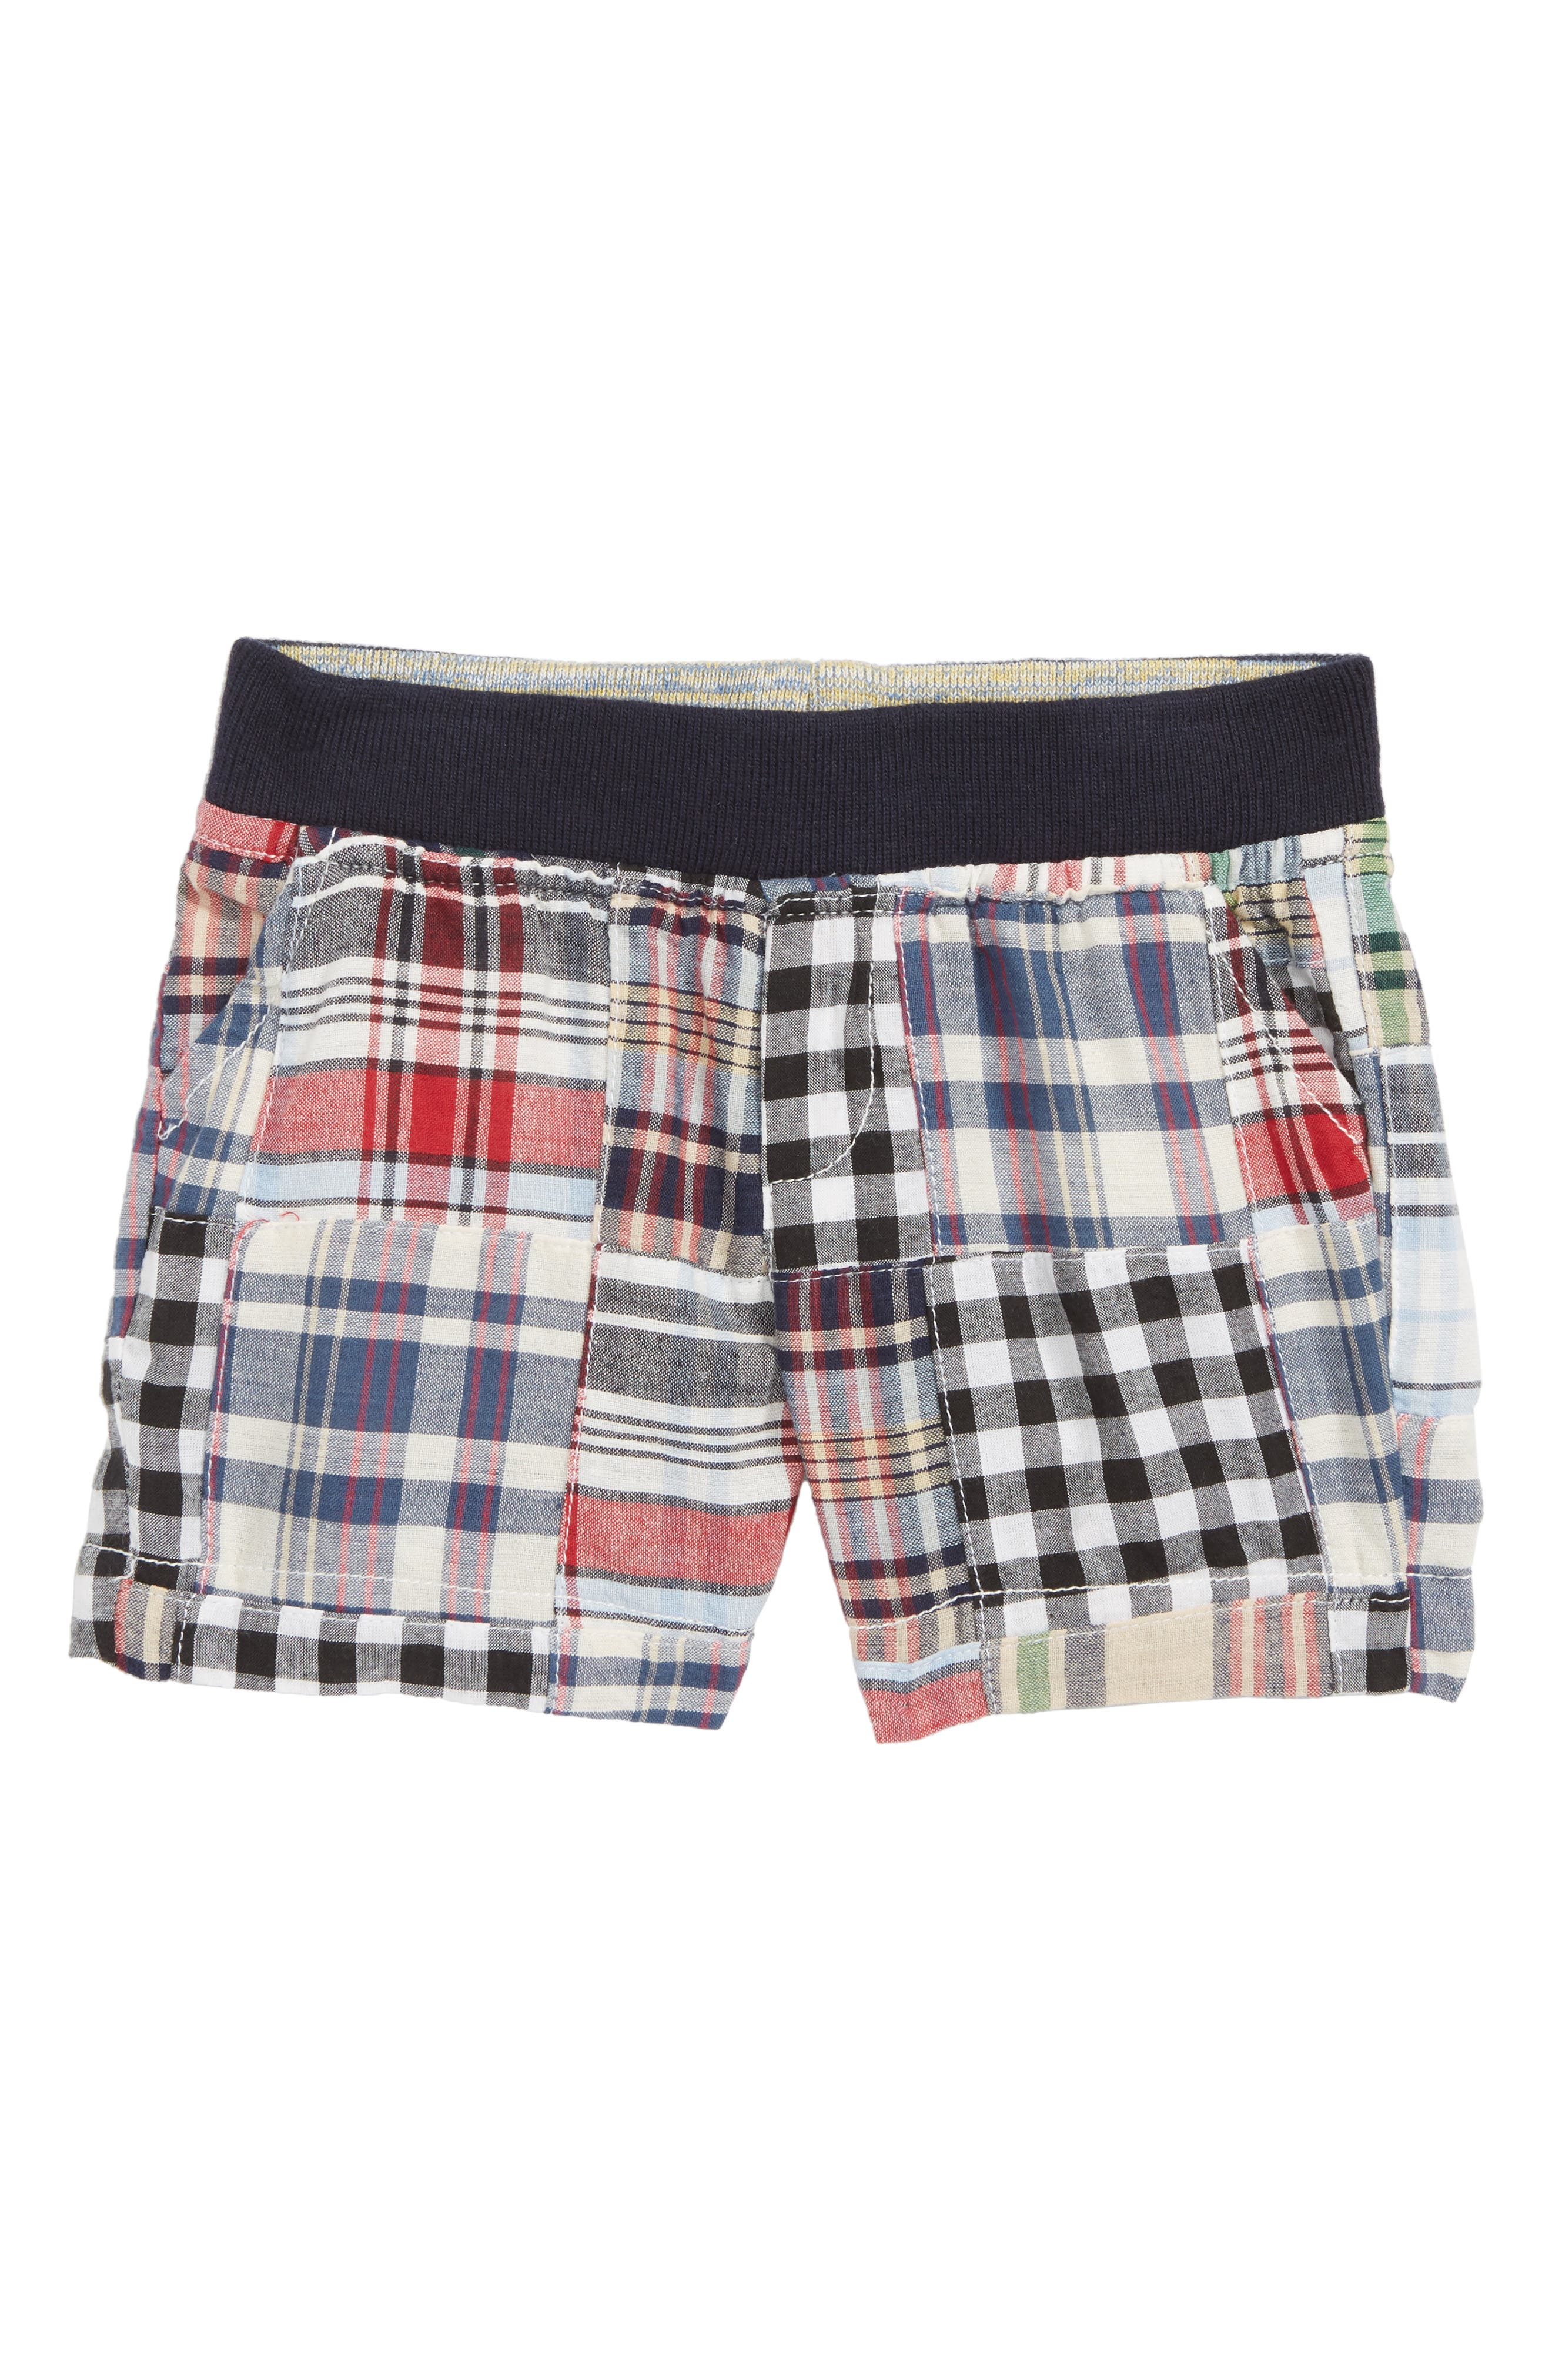 Maxwell Patchwork Plaid Shorts,                         Main,                         color, 400